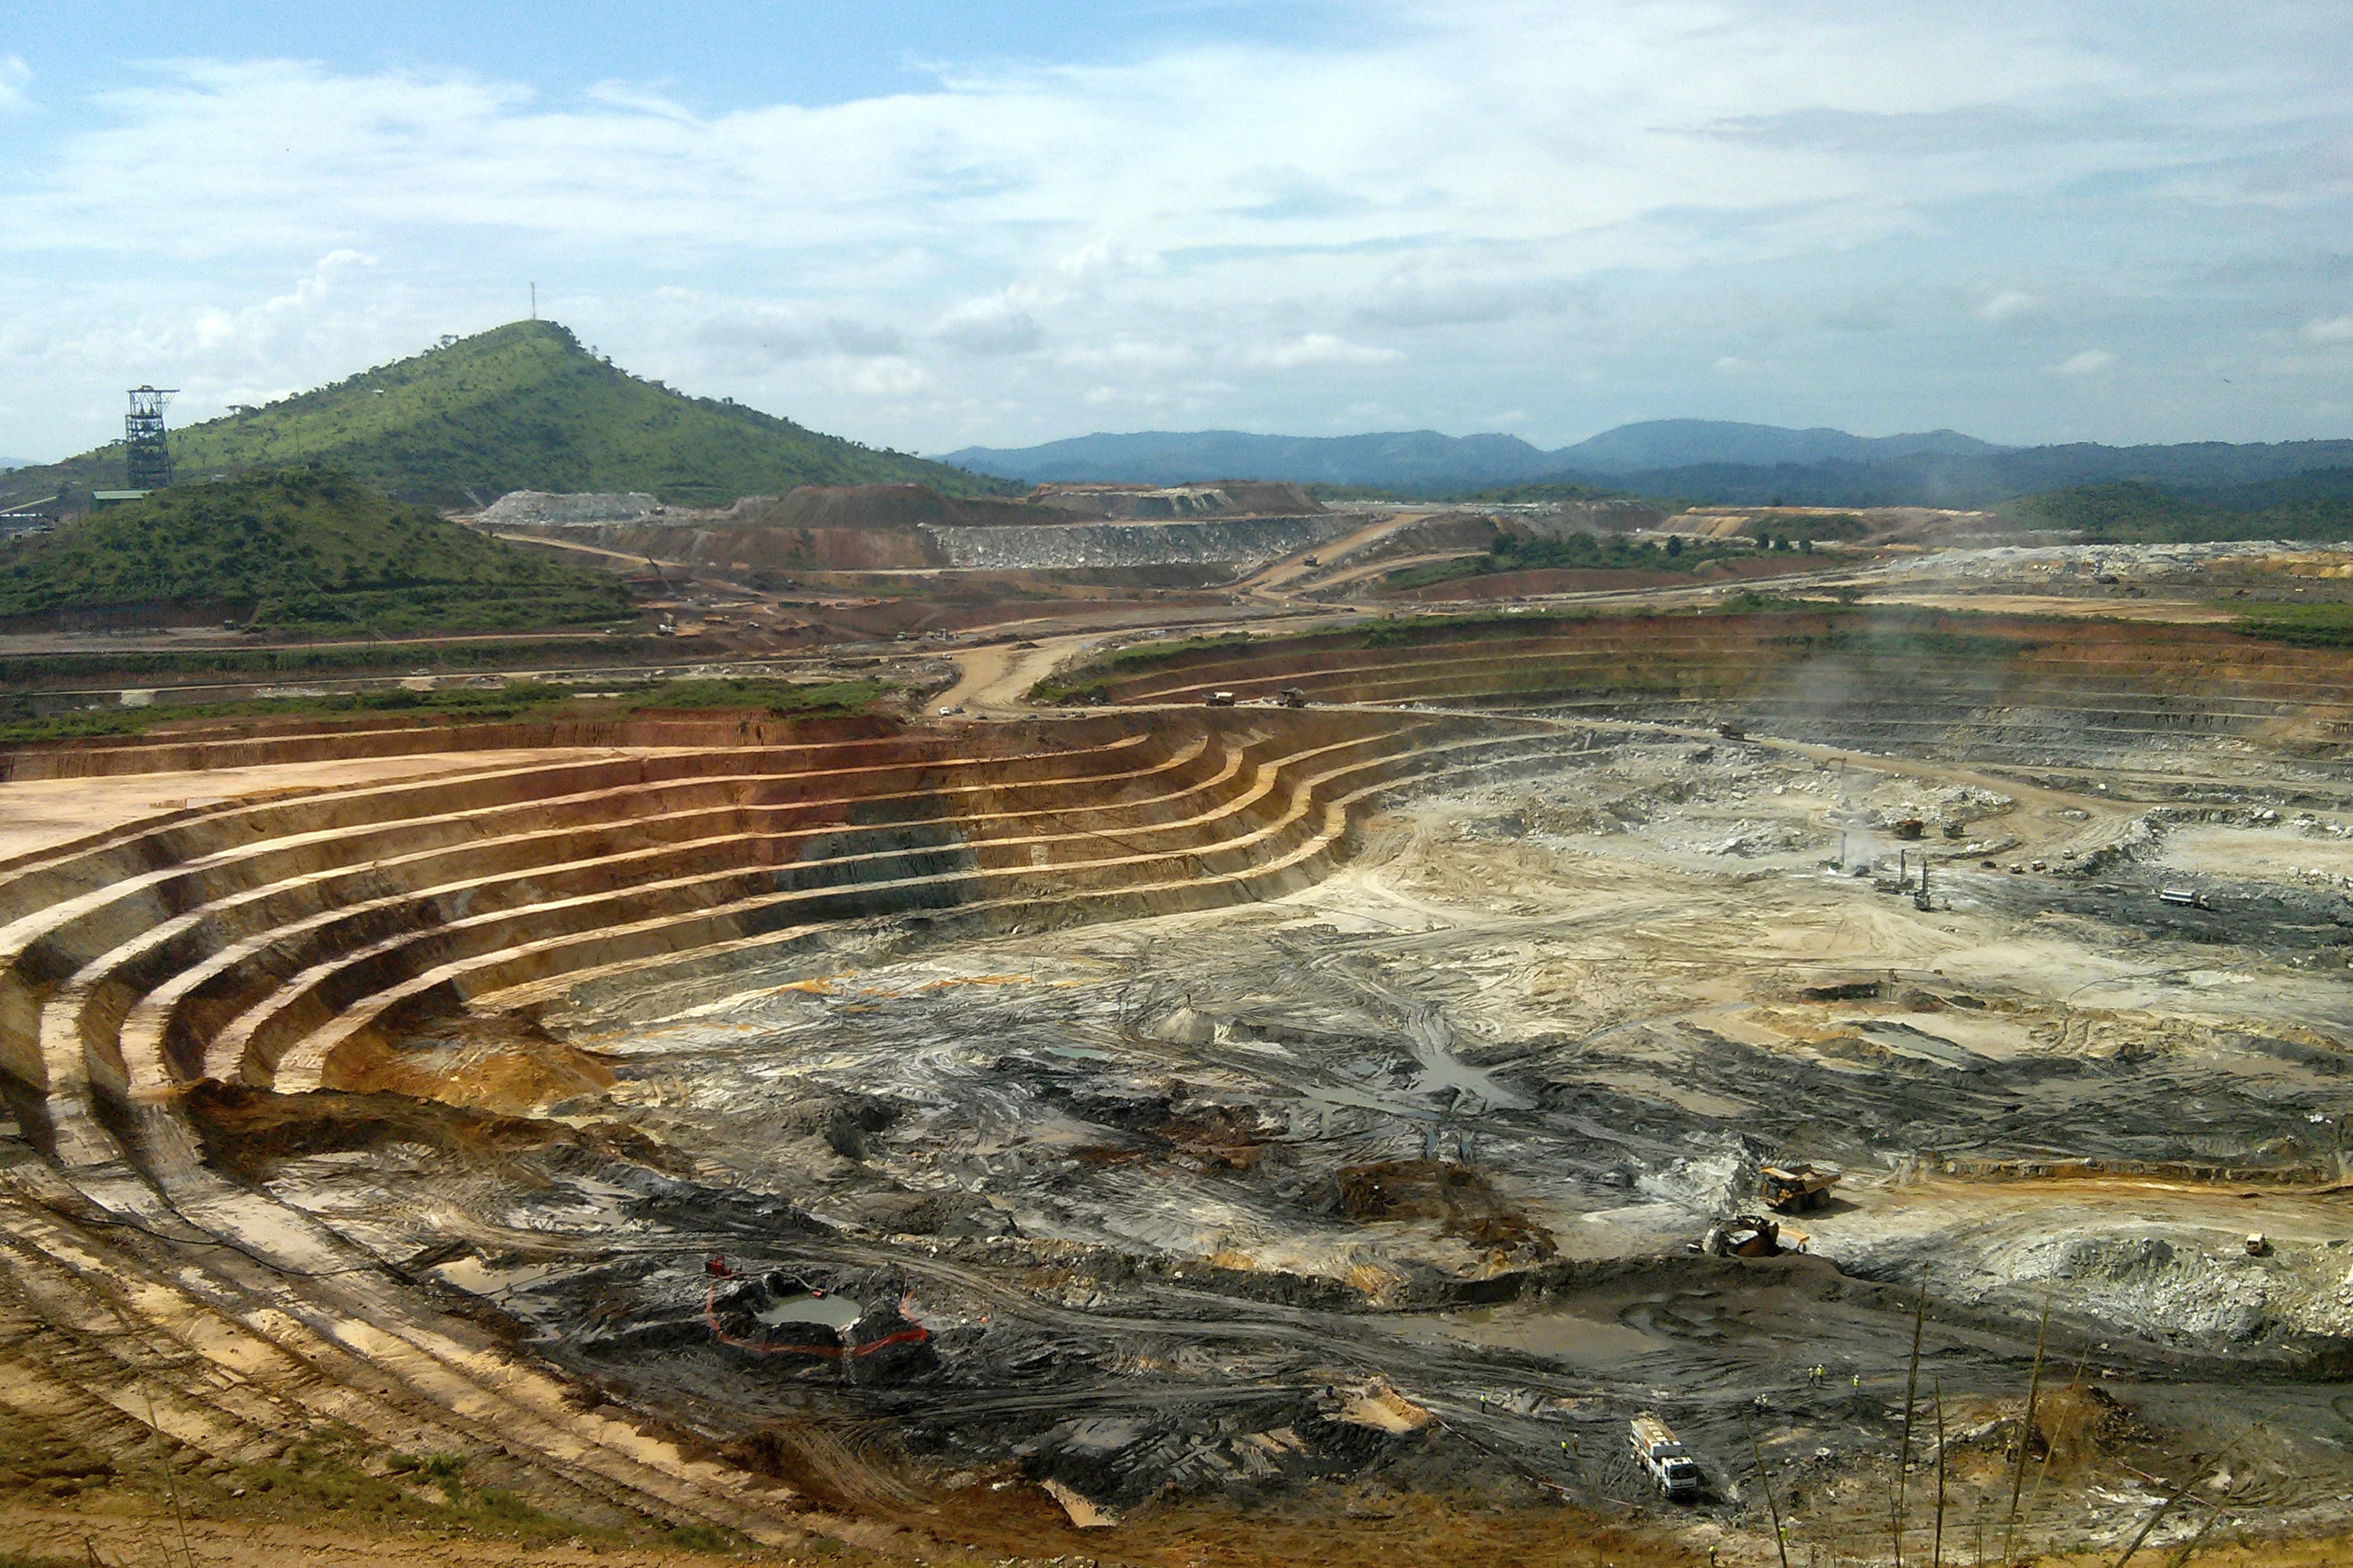 The KCD open pit gold mine at the Kibali mining site in northeast Democratic Republic of Congo, May 1, 2014.